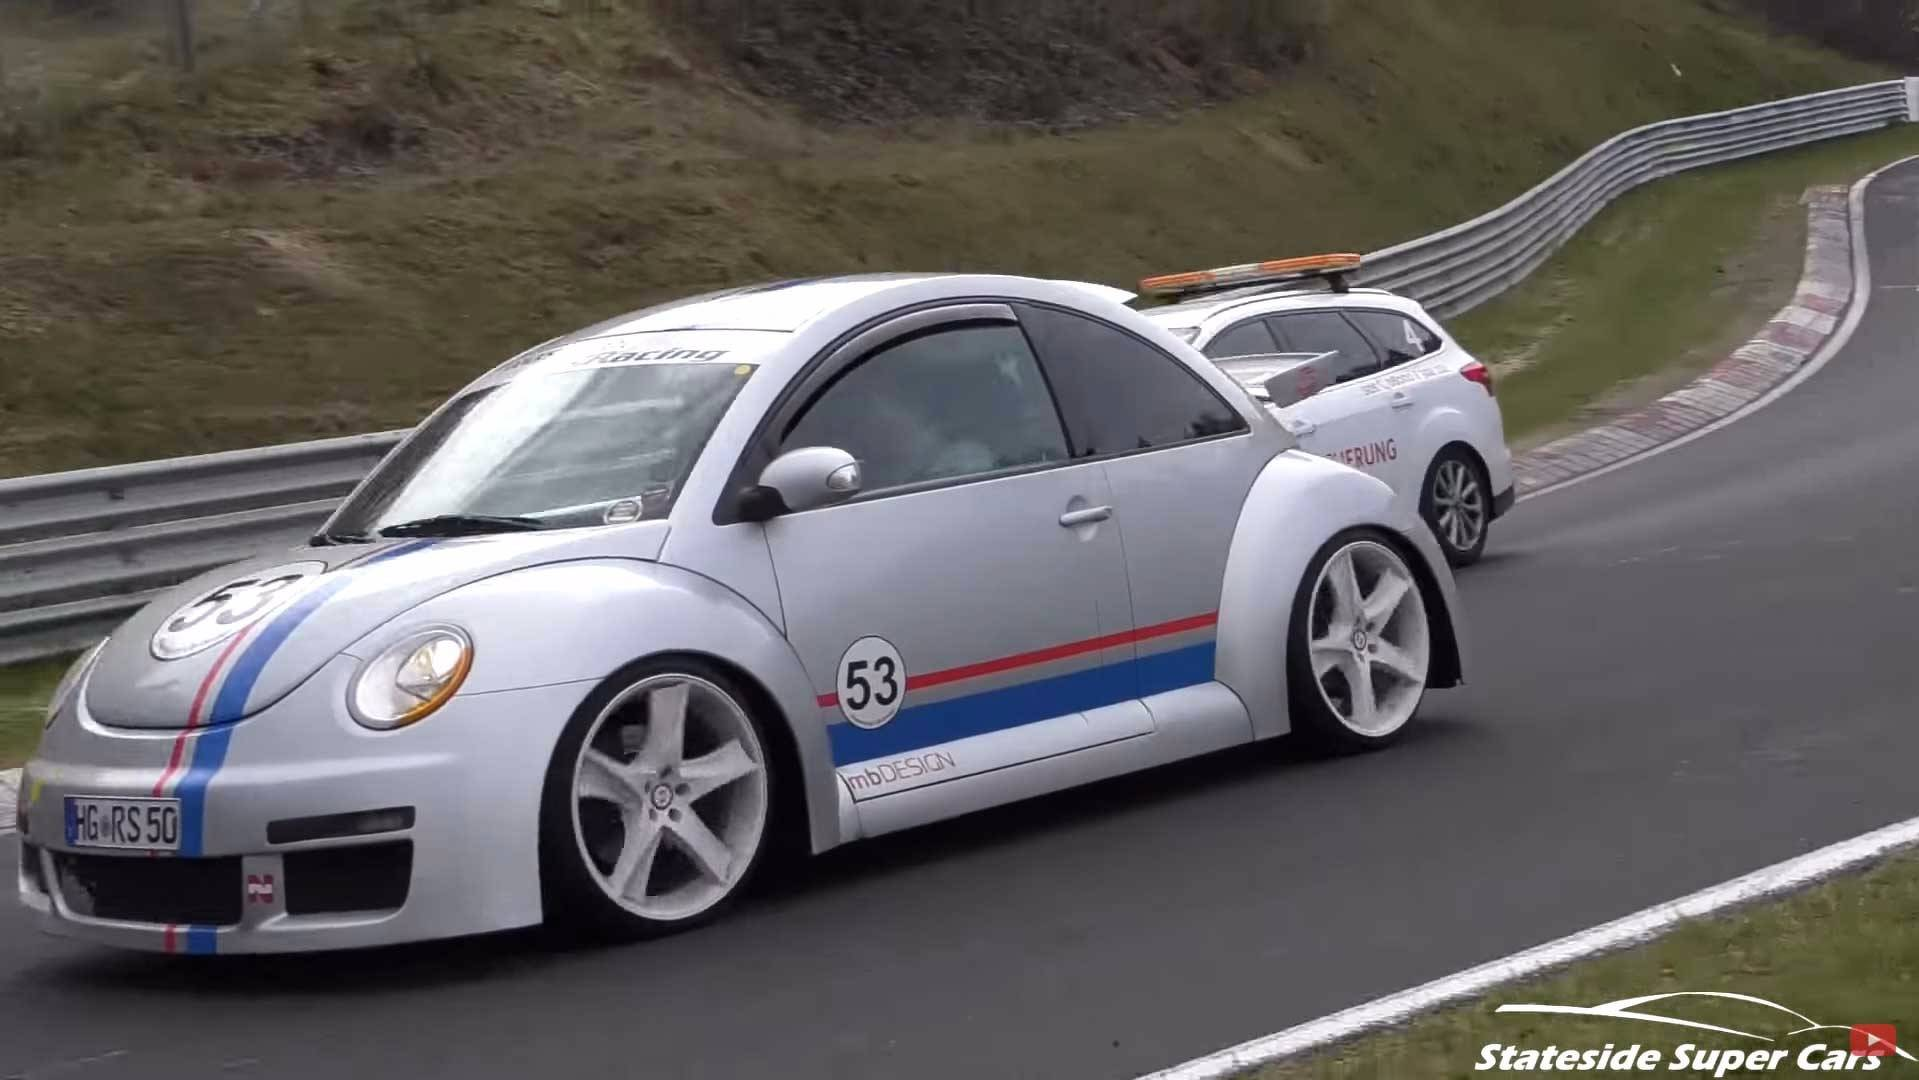 wasn takes turbo the as of img superfly autos definitely vw time and black but tag at t much bugs to a we don over combination about beetle around owner know all volkswagen too it